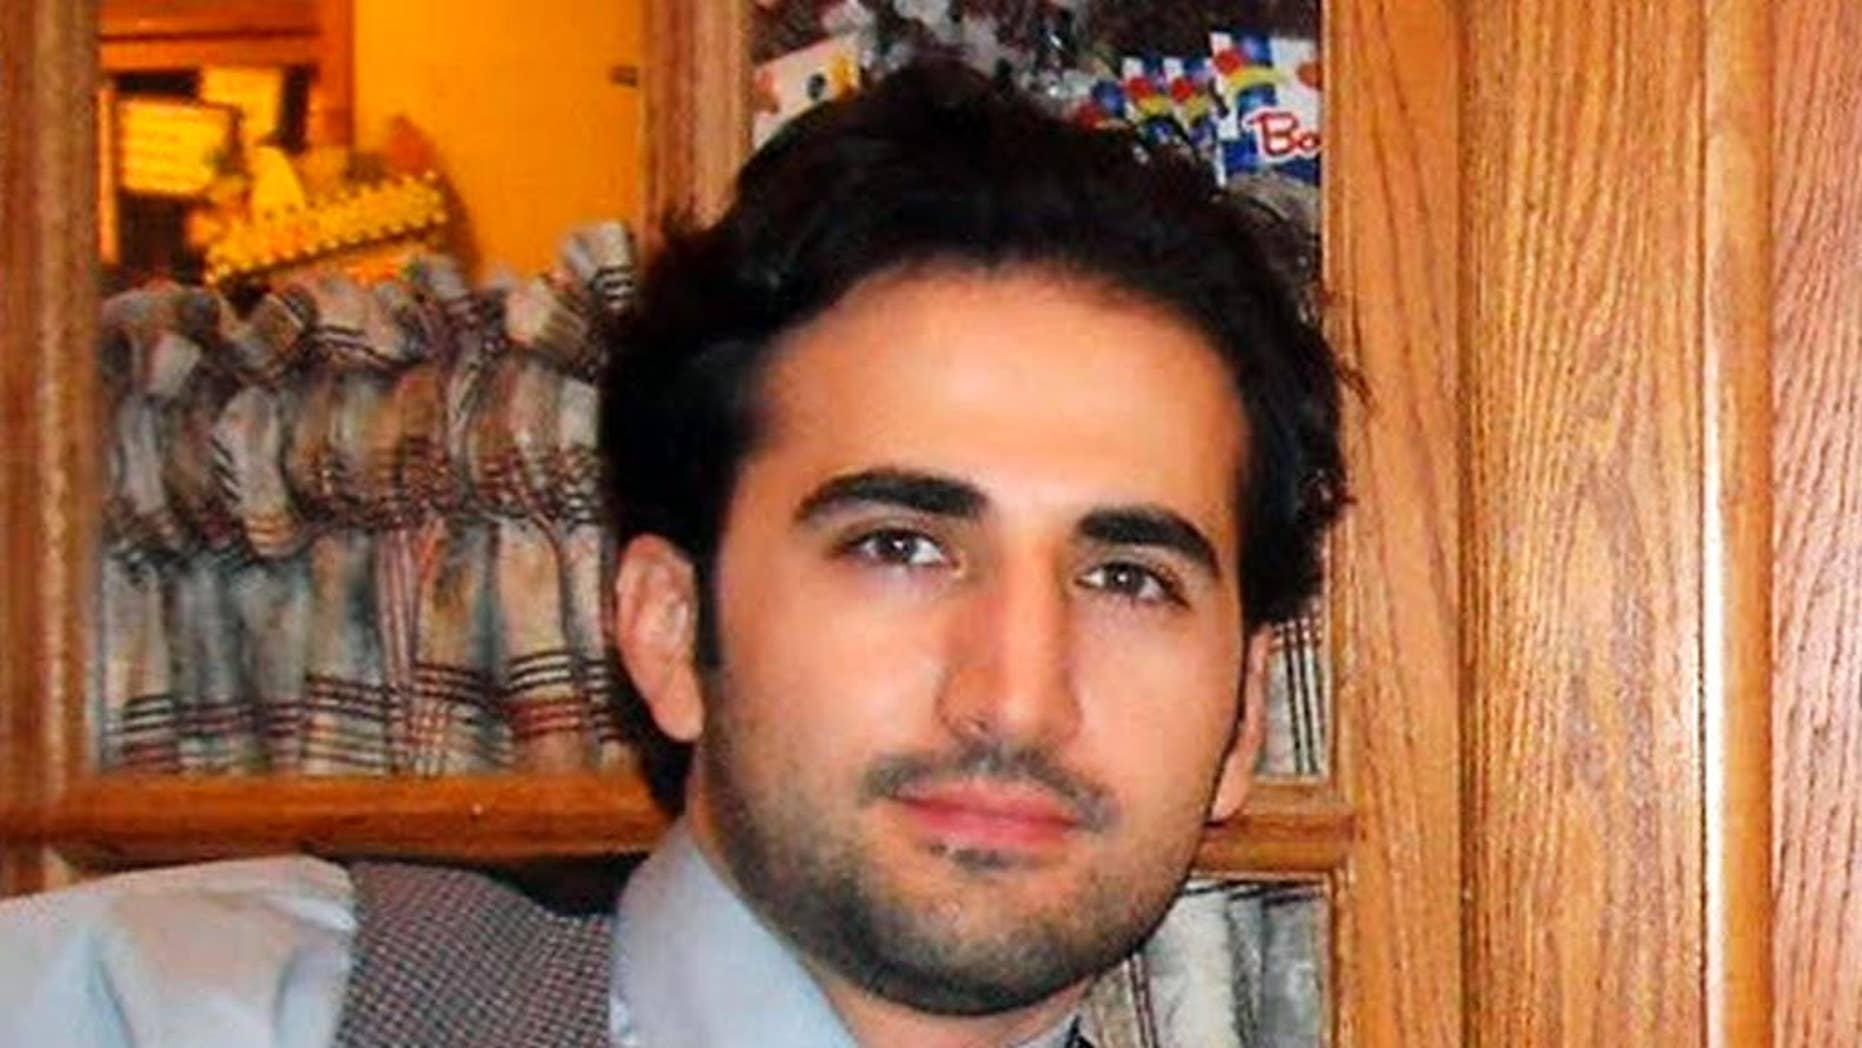 Amir Hekmati, a former U.S. Marine being held in Iran over the past two years was convicted of criminal charges after being accused of working for the CIA. (AP Photo/Hekmati family via FreeAmir.org, File)